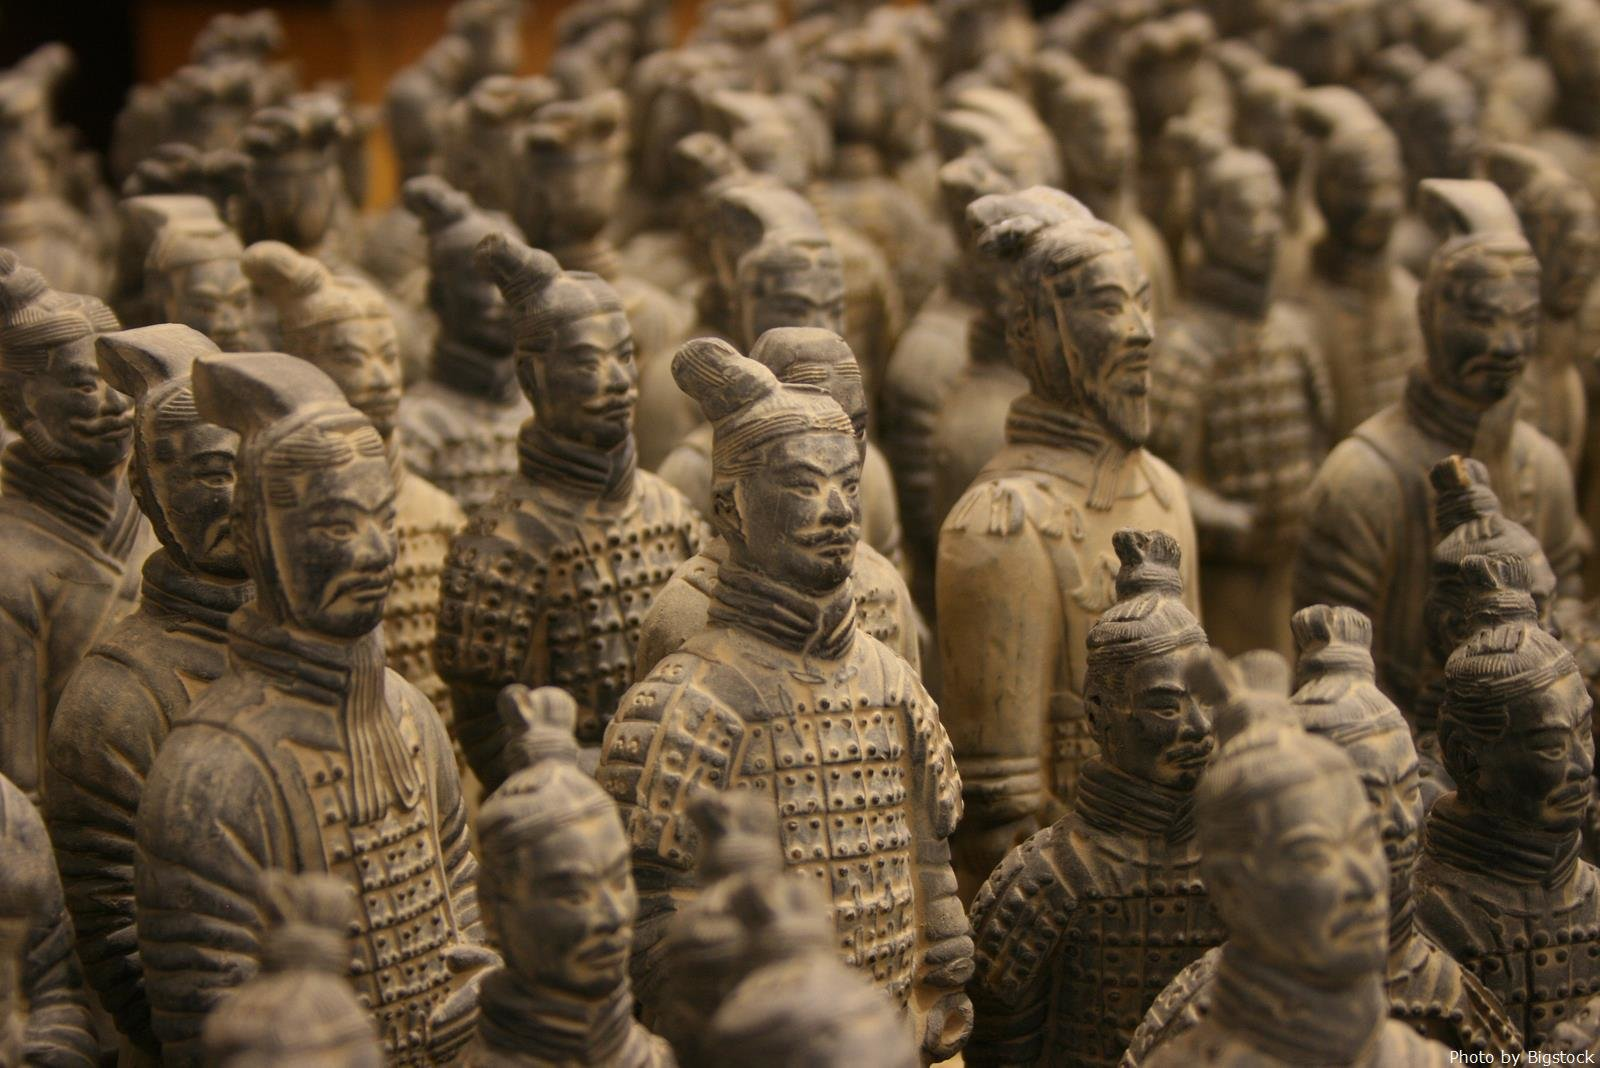 Essay On The Terracotta Army